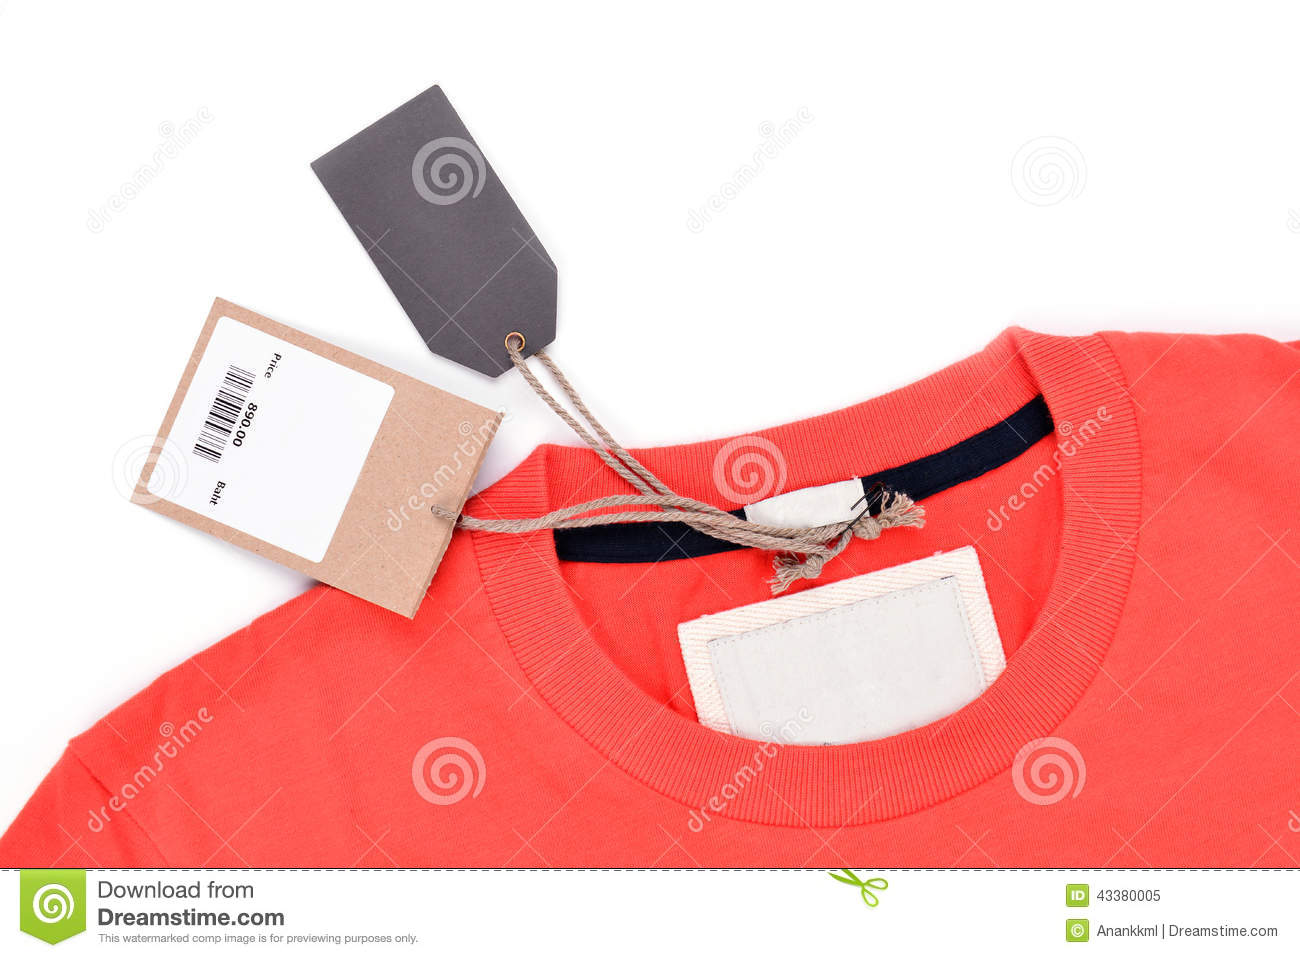 T Shirt With Price Tag Stock Photo - Image: 43380005